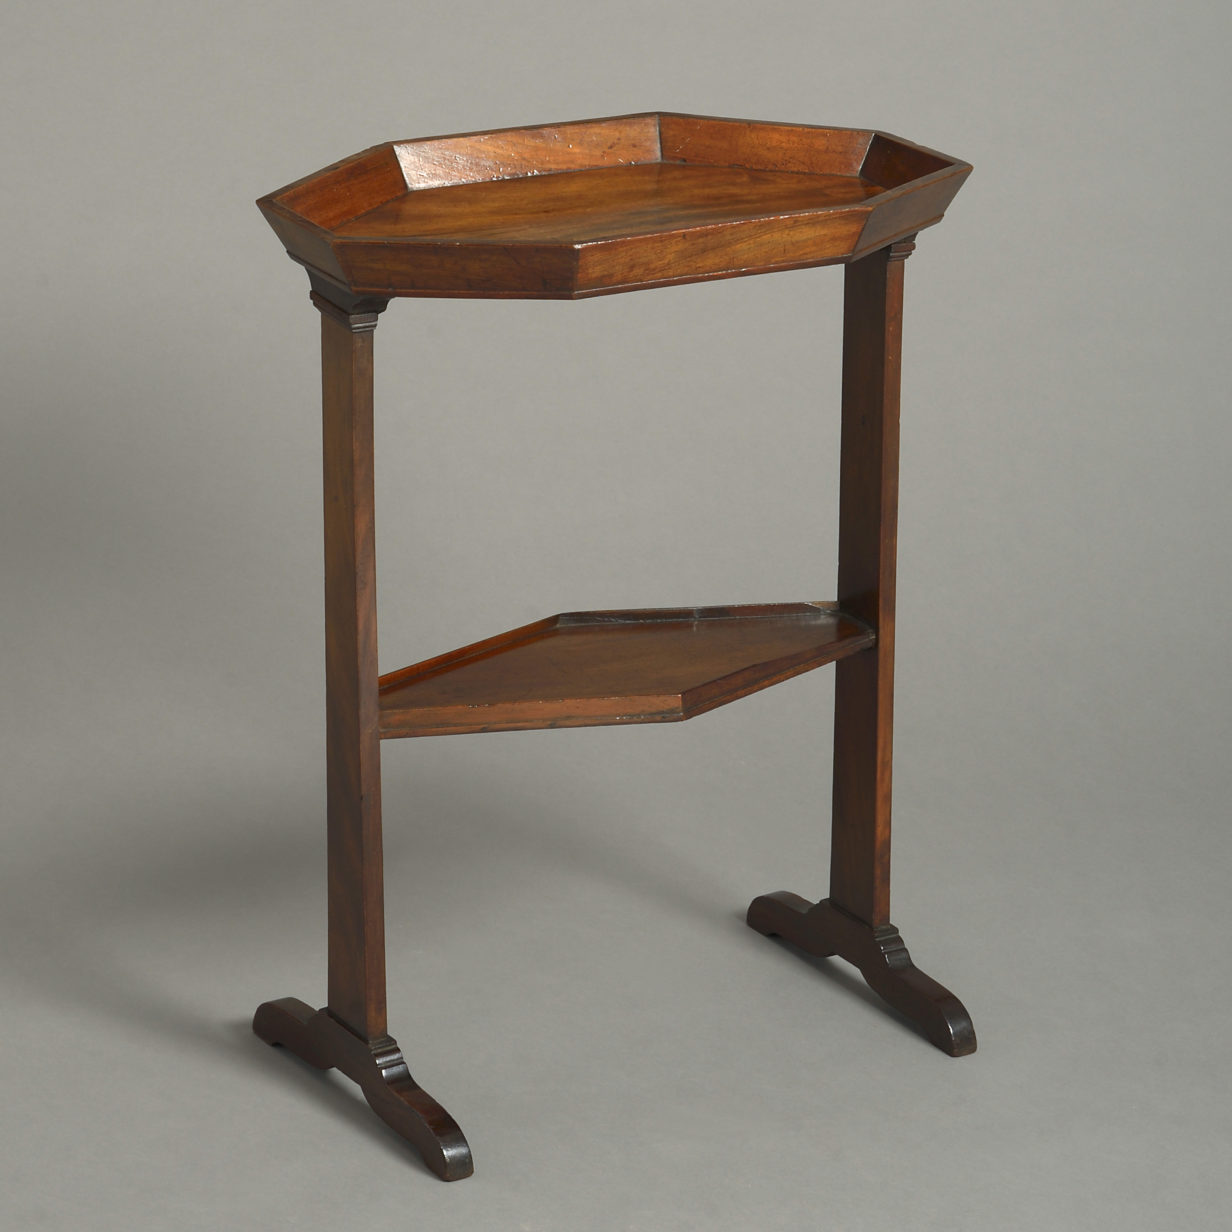 Directoire Period Occasional Table